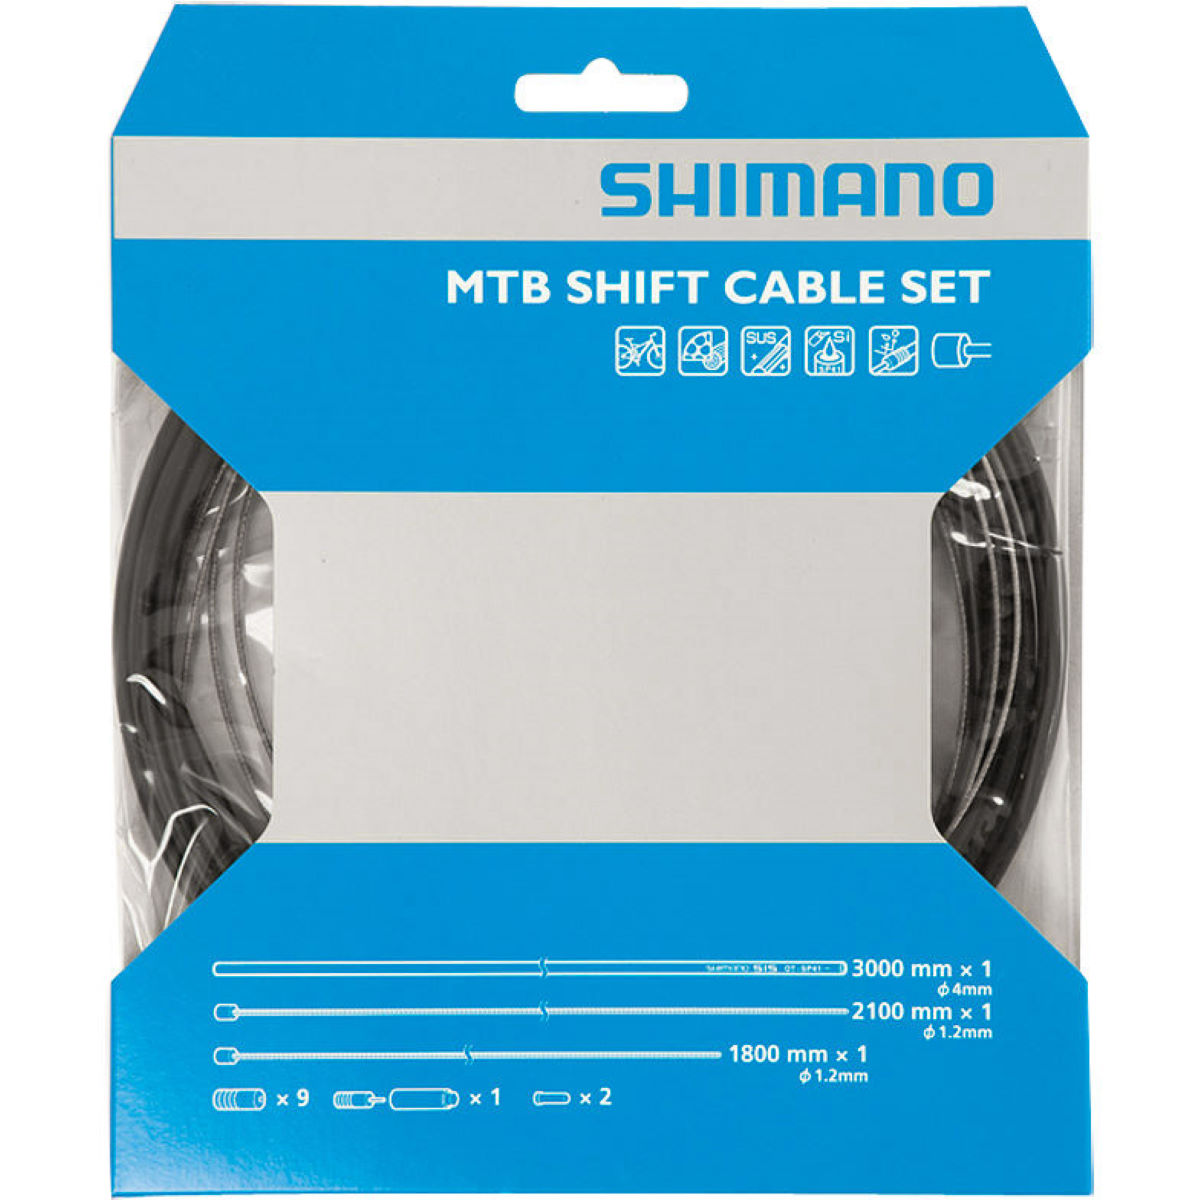 Shimano MTB Gear Cable Set with Stainless Steel Wire